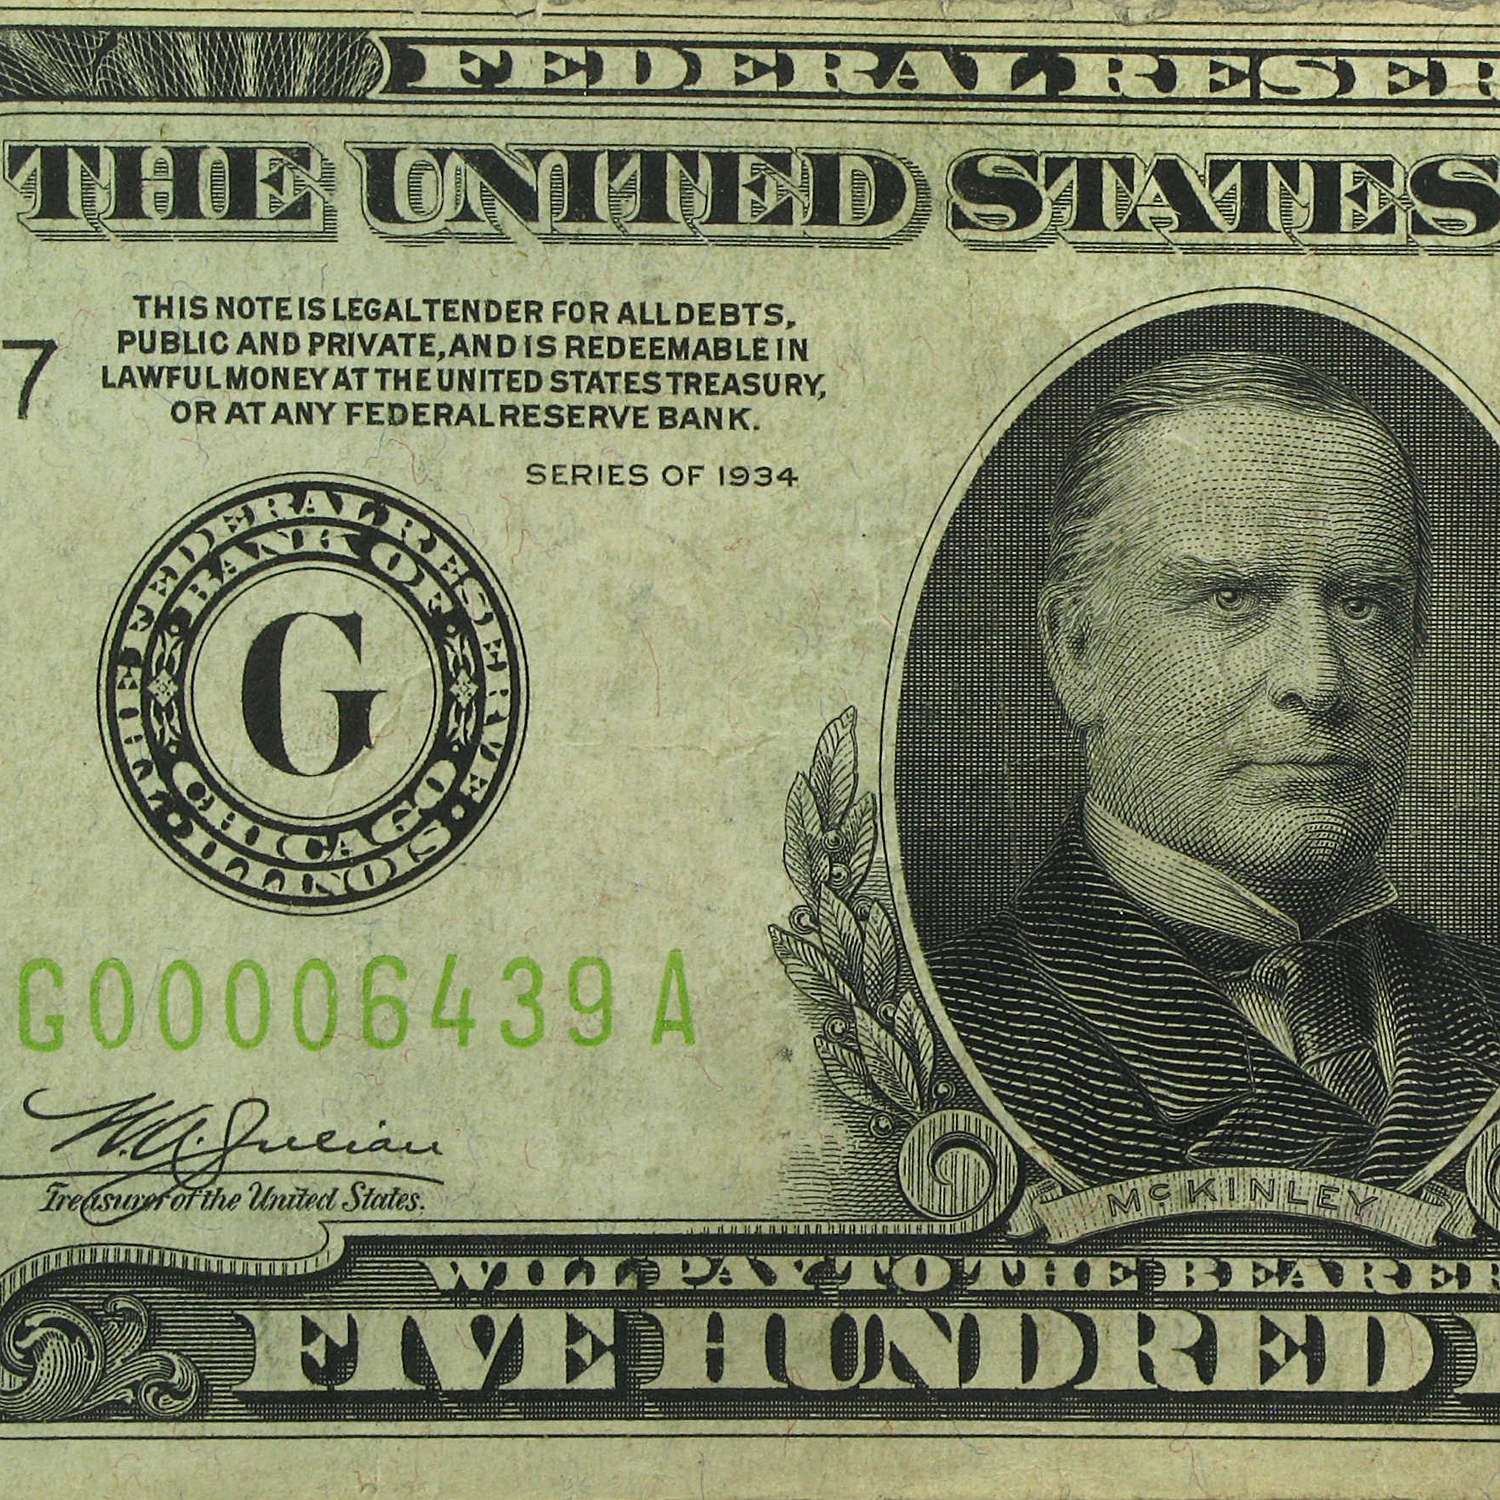 1934 (G-Chicago) $500 FRN (Very Fine +) LGS